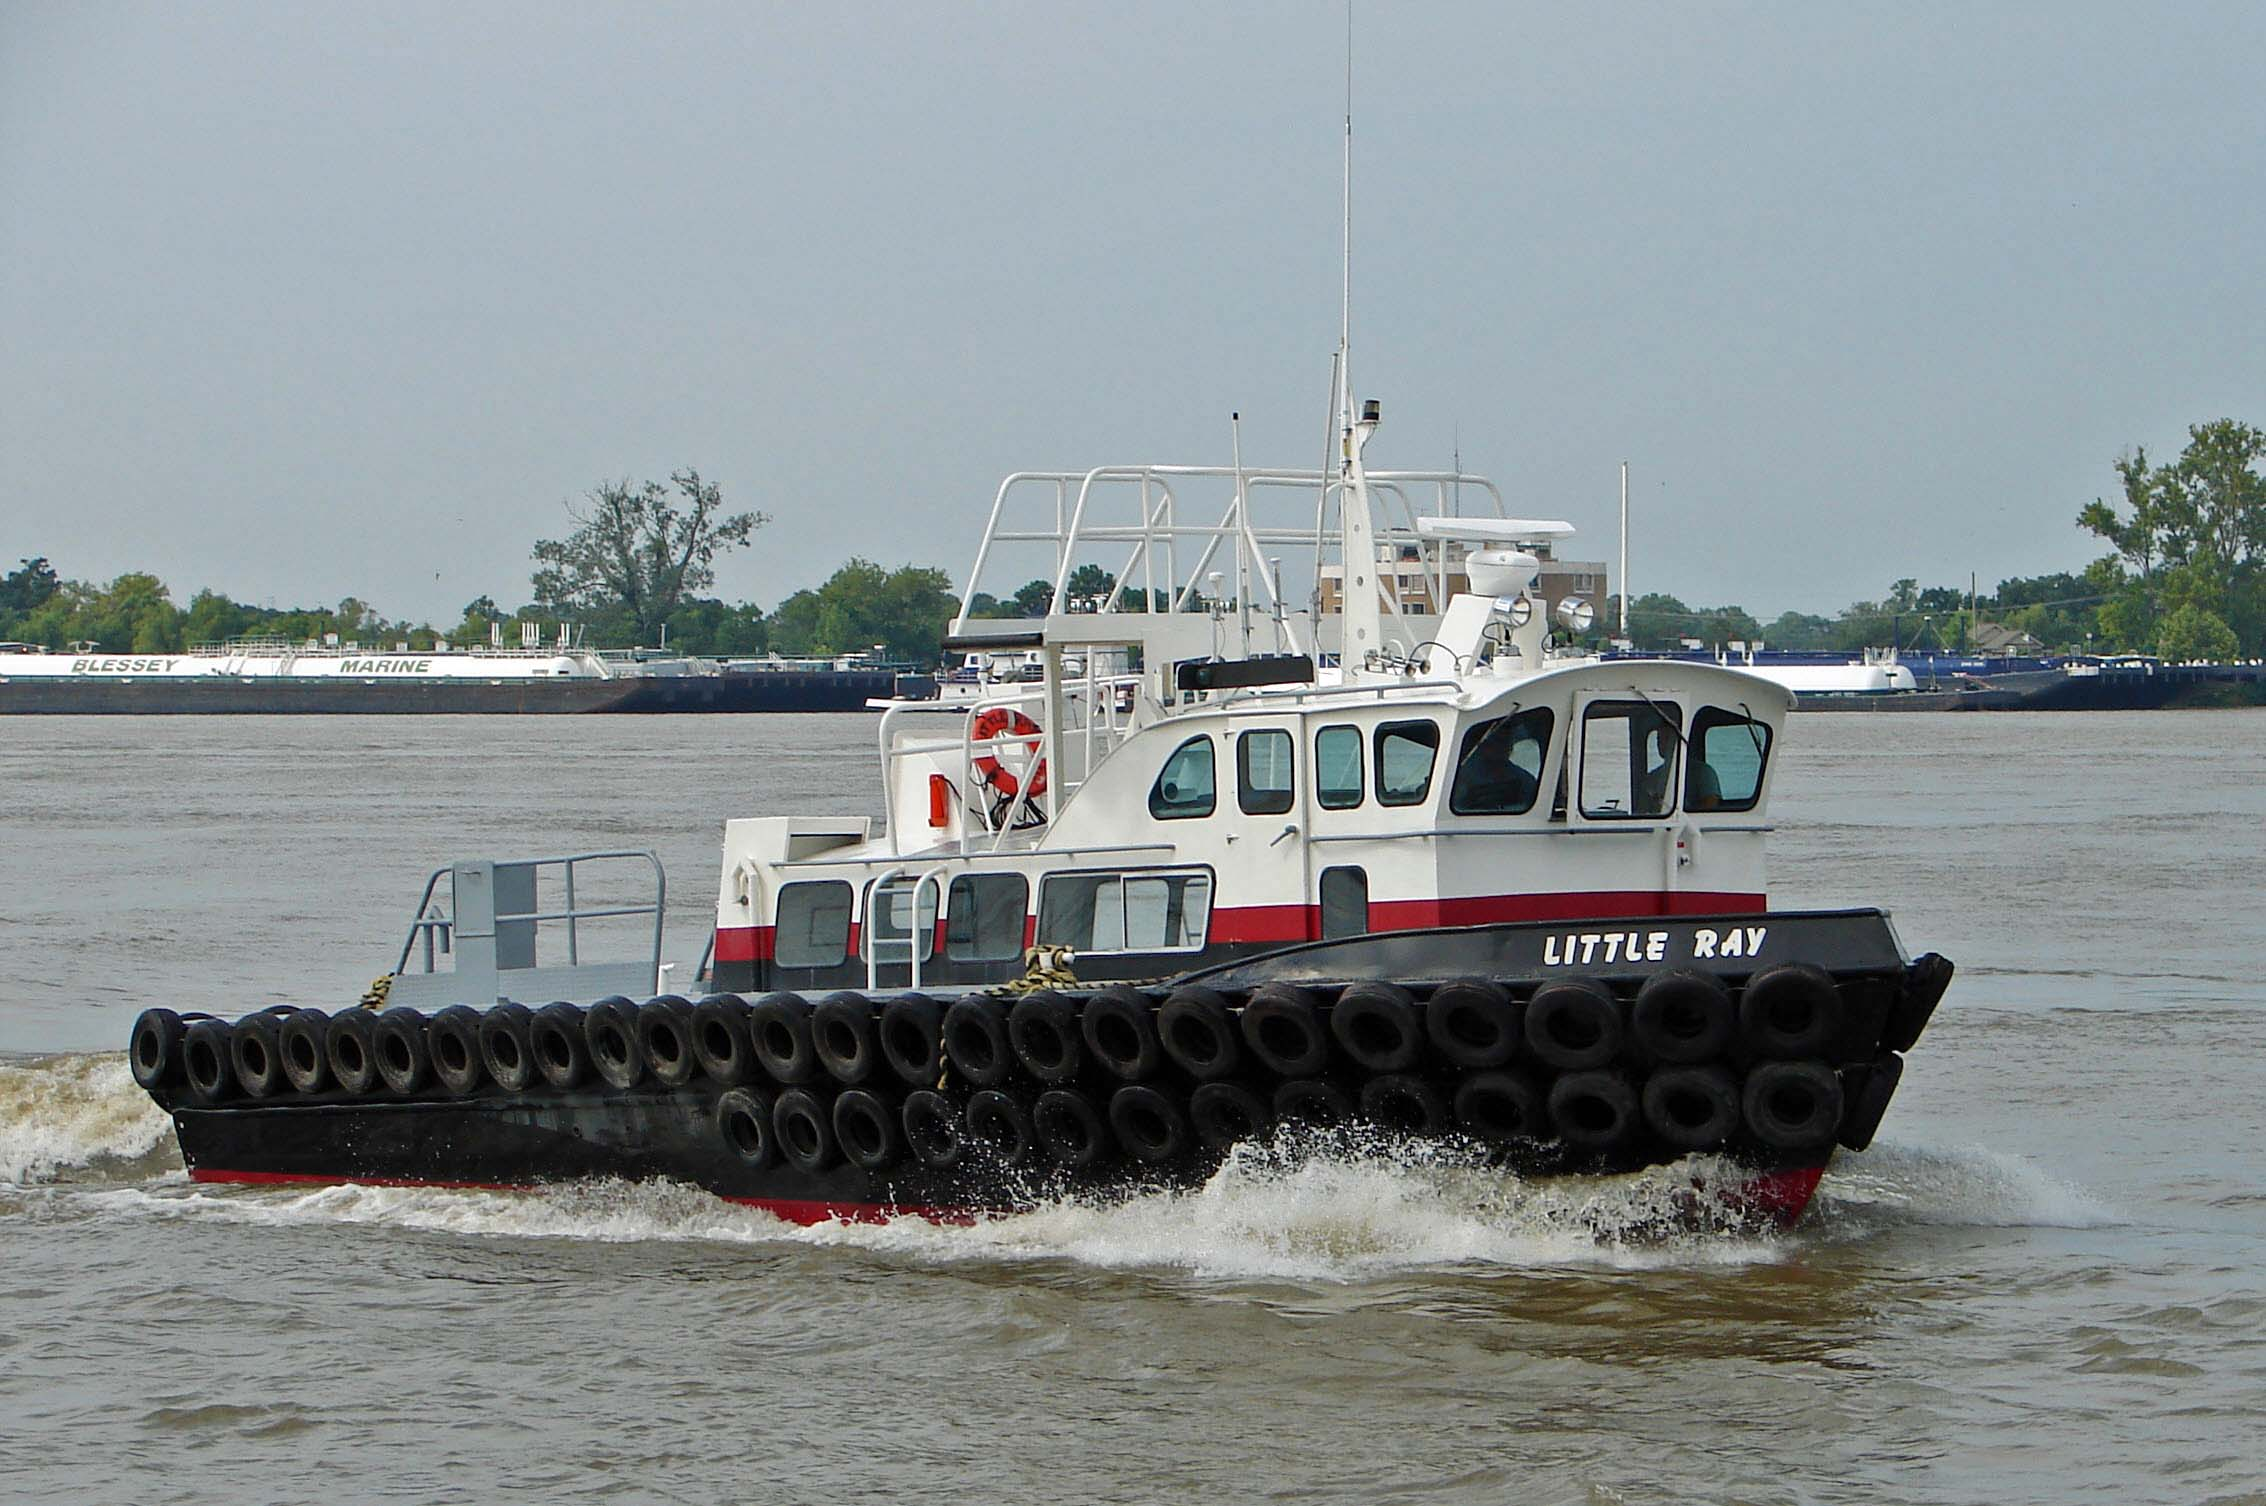 U.S. Coast Guard Certified Boats